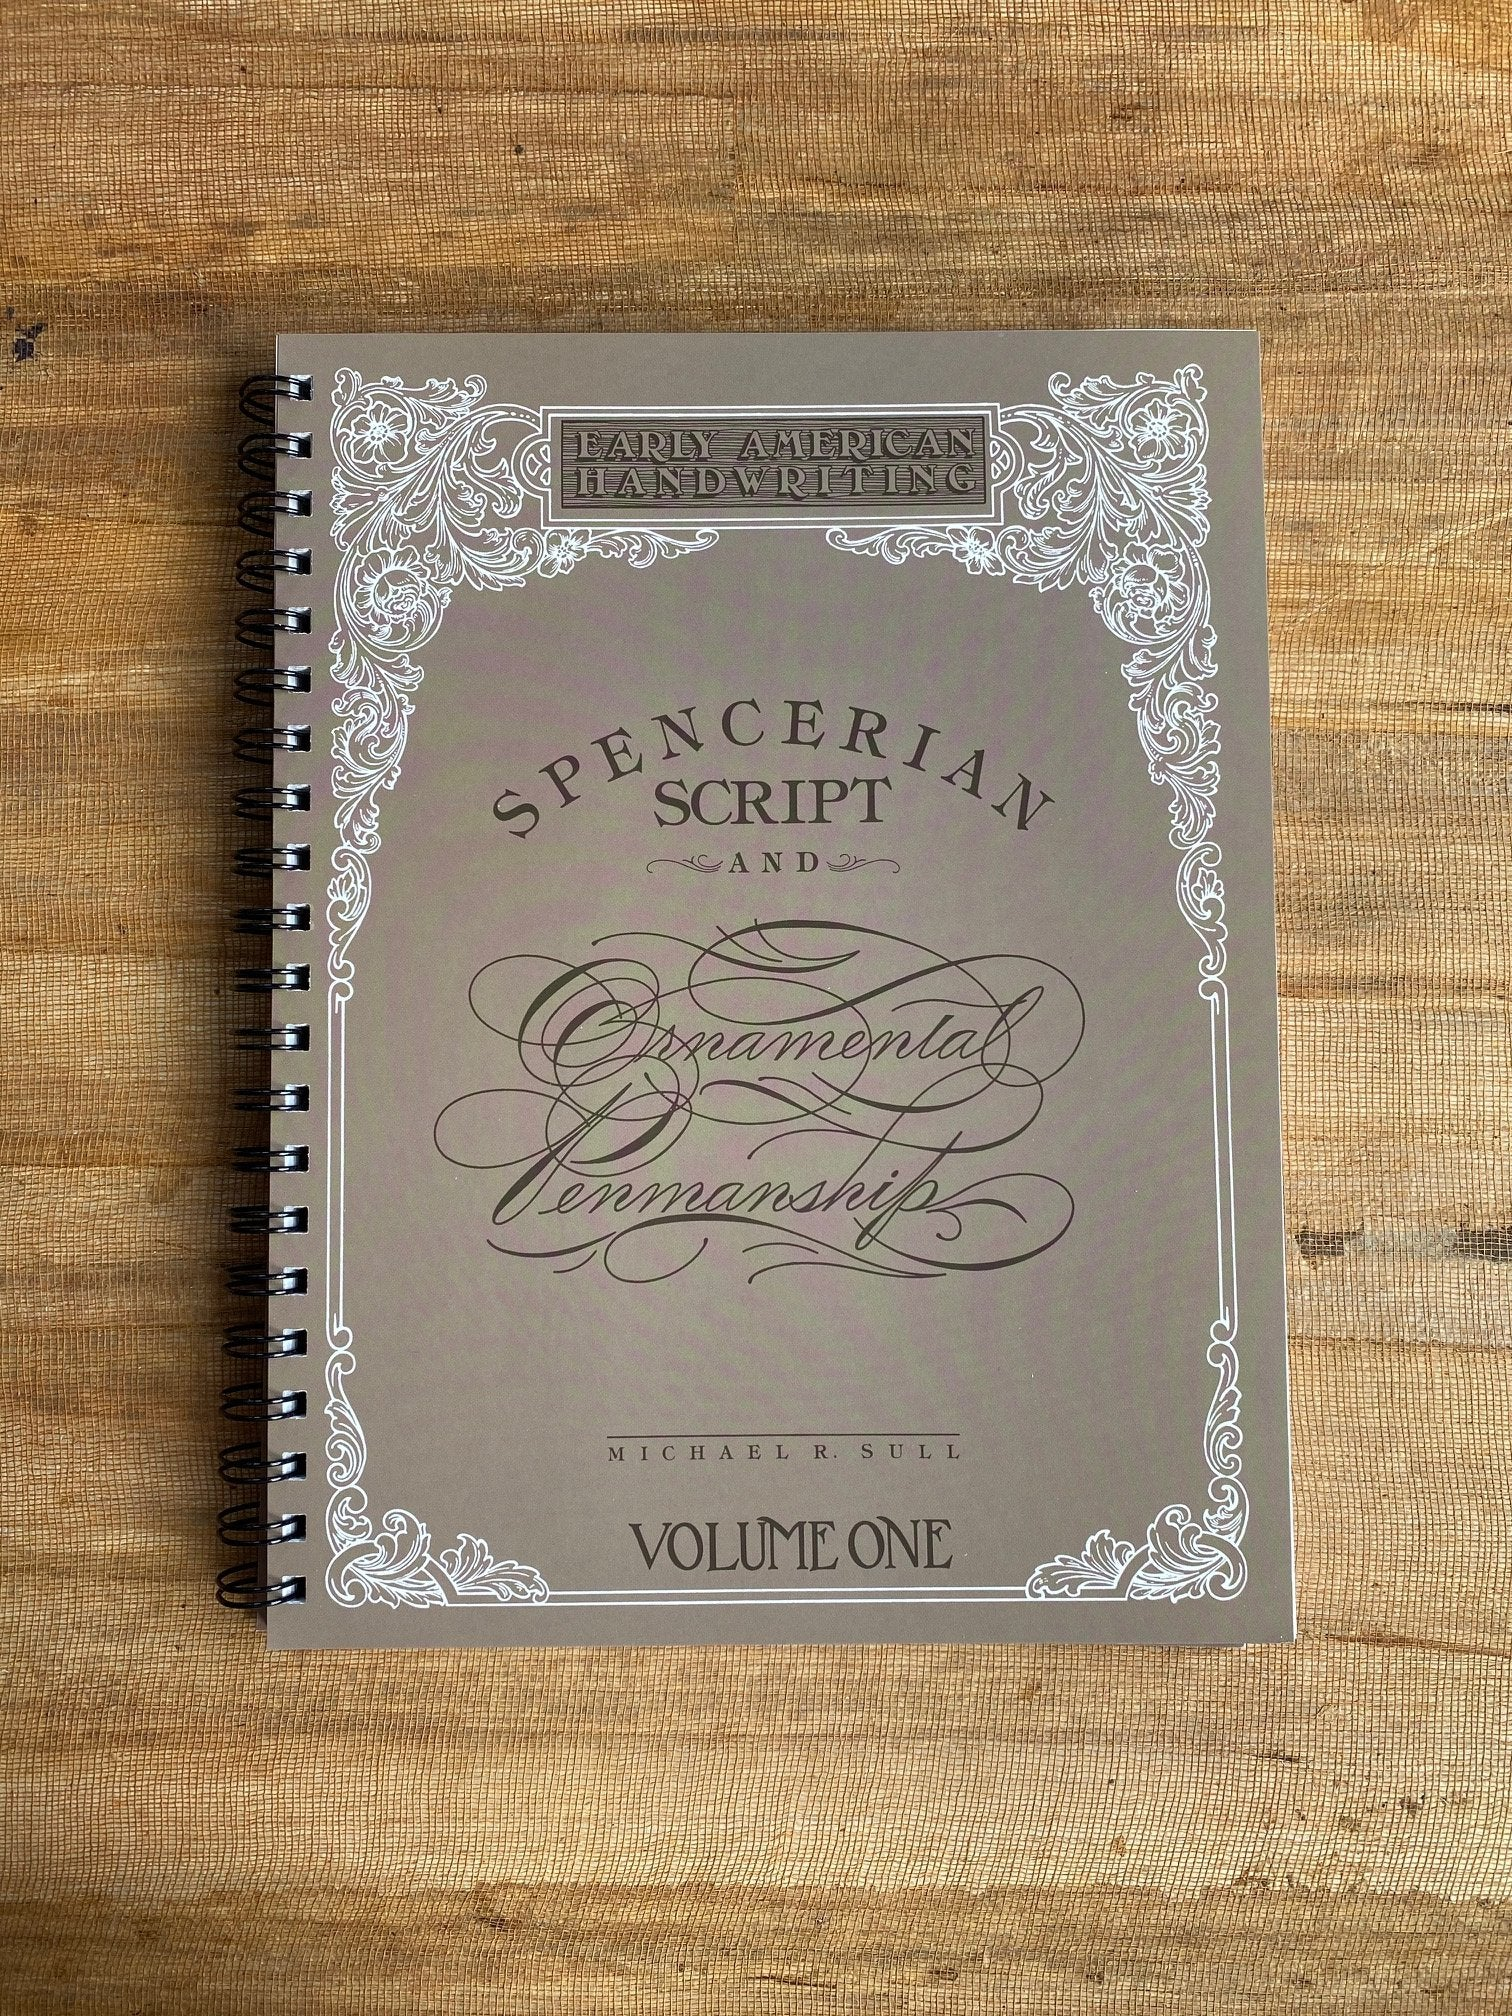 Spencerian Script & Ornamental Penmanship by Michael Sull - Vol. 1